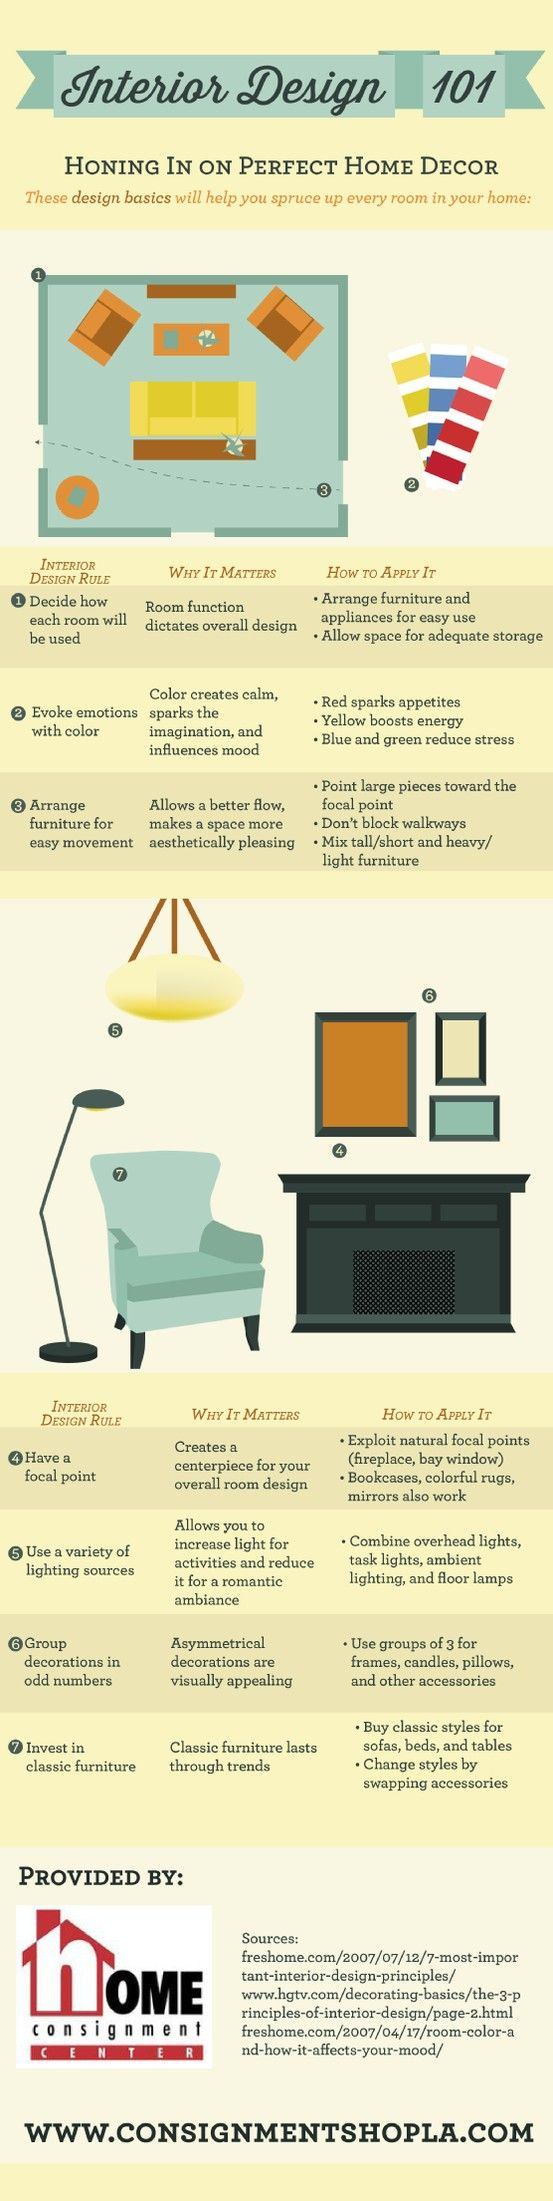 Interior Design Tips And Tricks best 25+ rearranging furniture ideas on pinterest | rearrange room